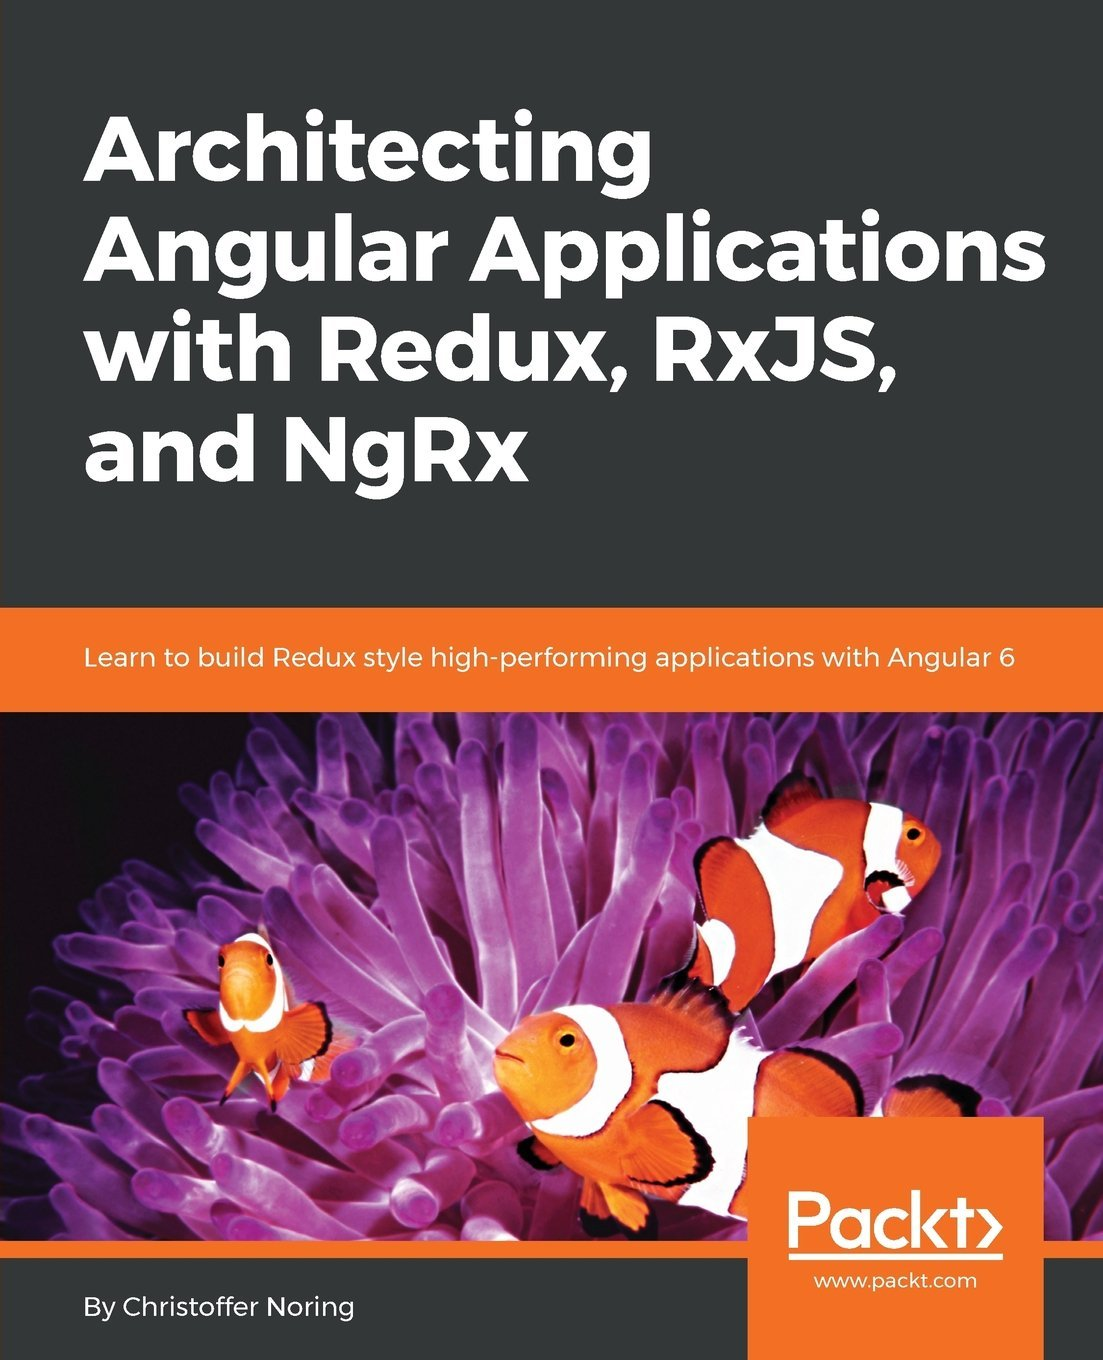 Architecting Angular Applications using Redux, RxJS and NGRX